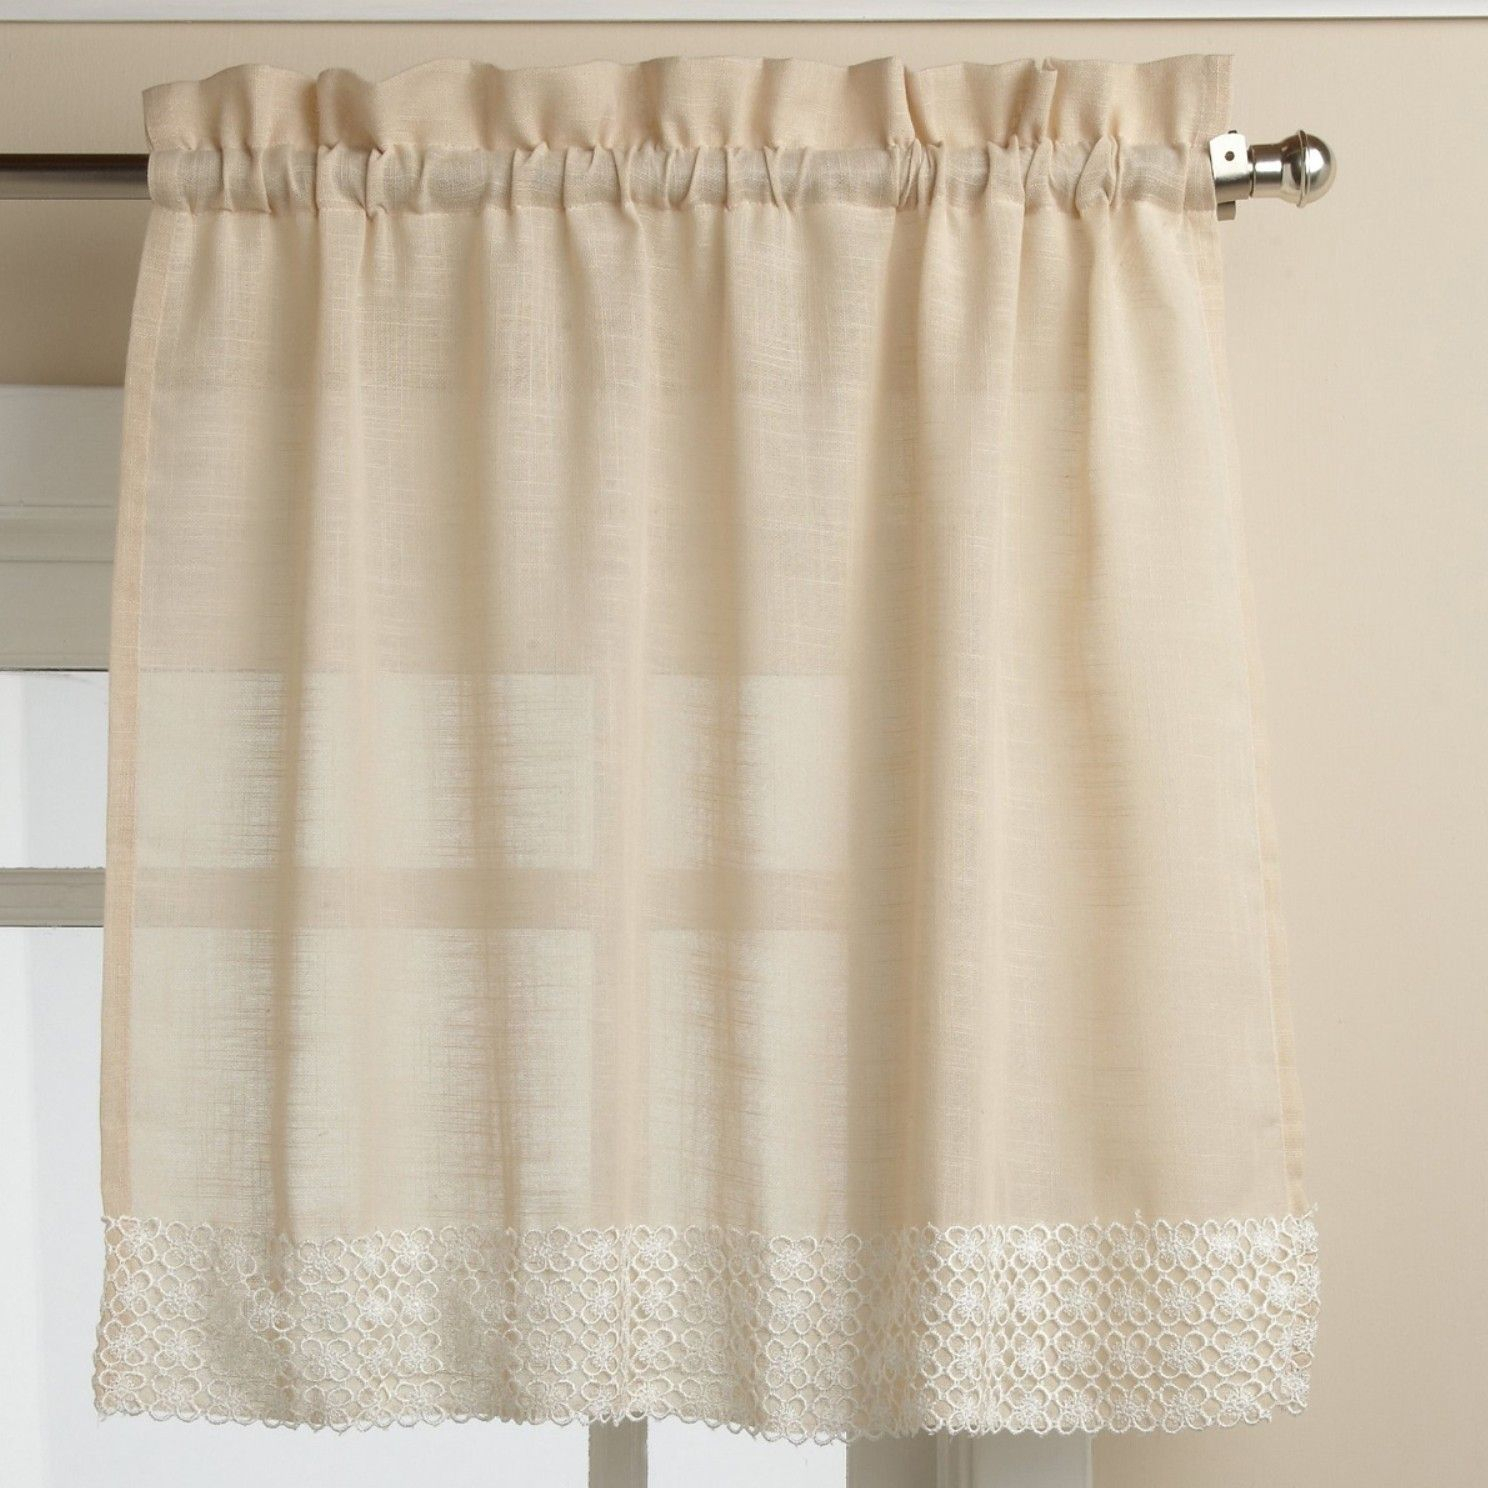 Salem Kitchen Tier Curtain | Products | Curtains, Kitchen For Country Style Curtain Parts With White Daisy Lace Accent (View 18 of 20)